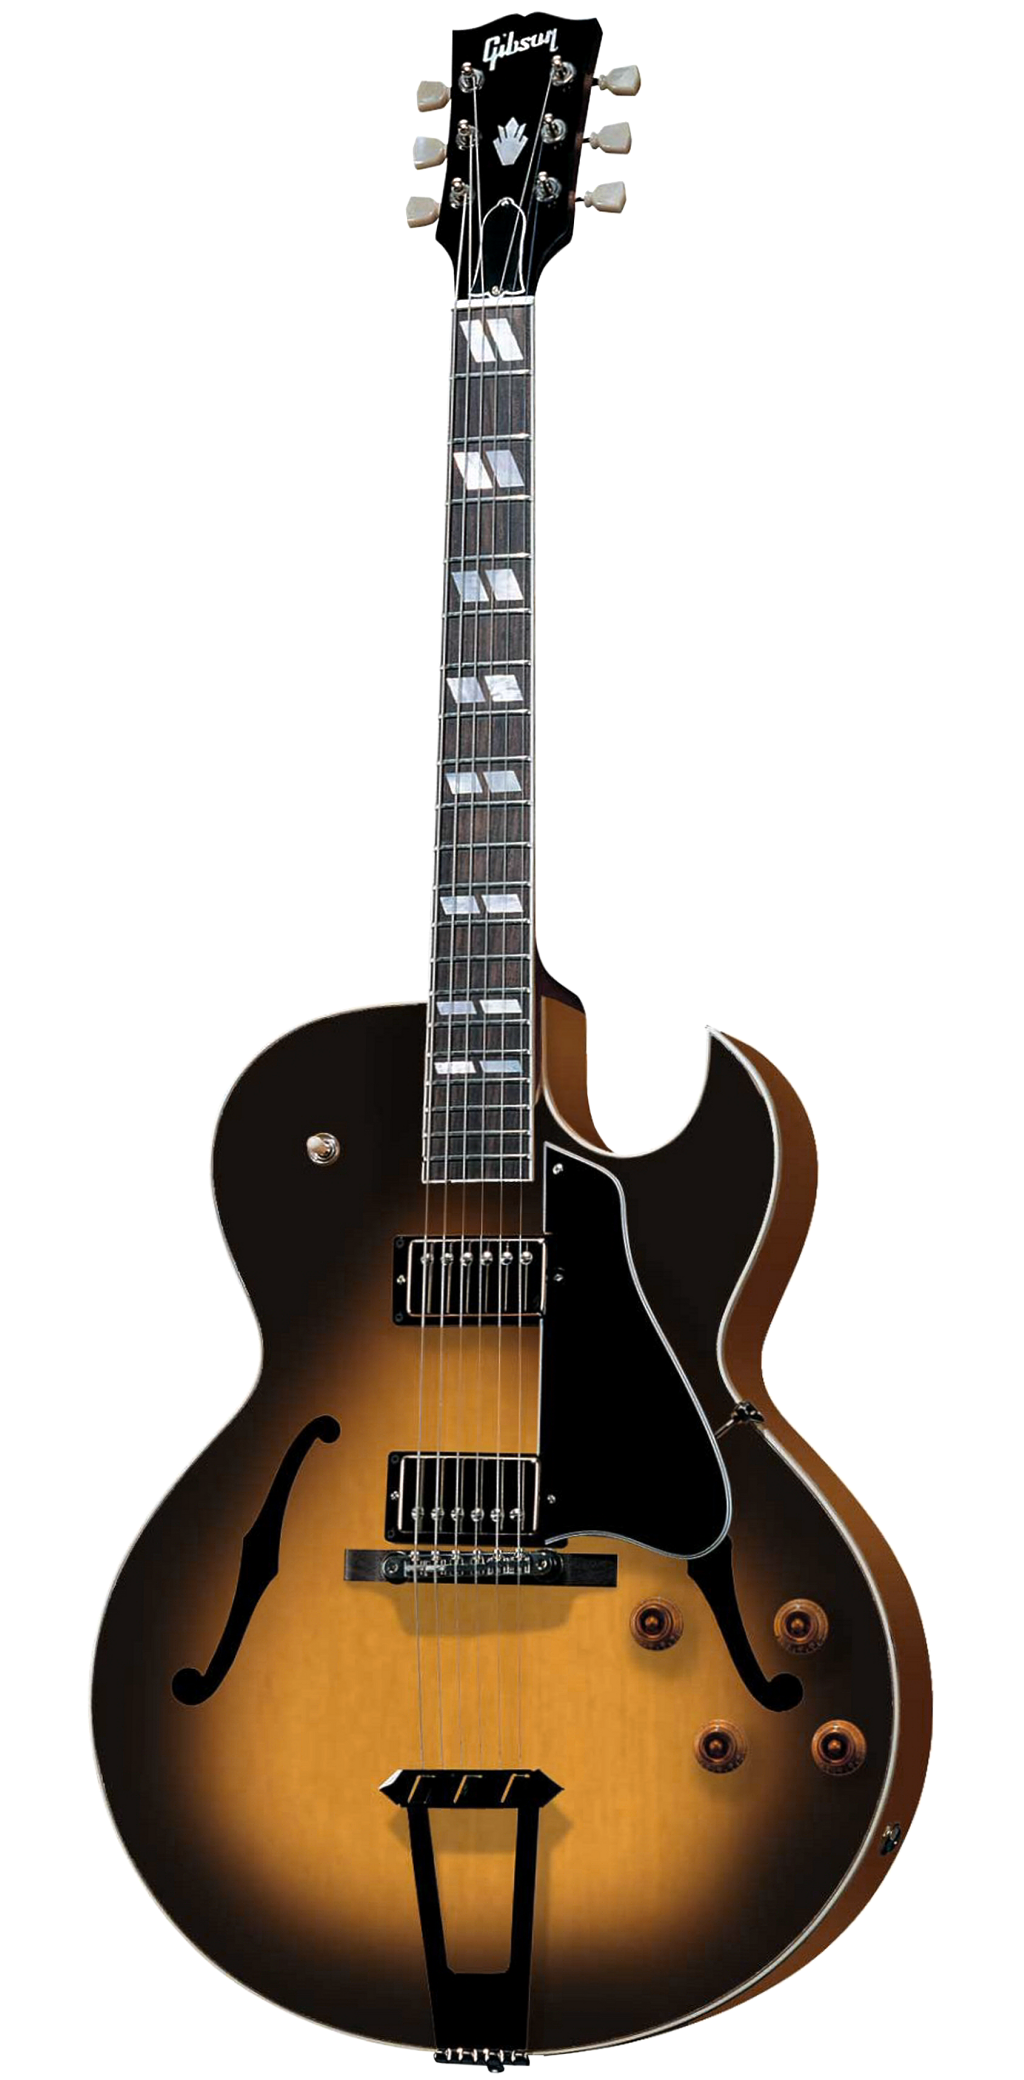 electric guitar png in high resolution web icons png. Black Bedroom Furniture Sets. Home Design Ideas